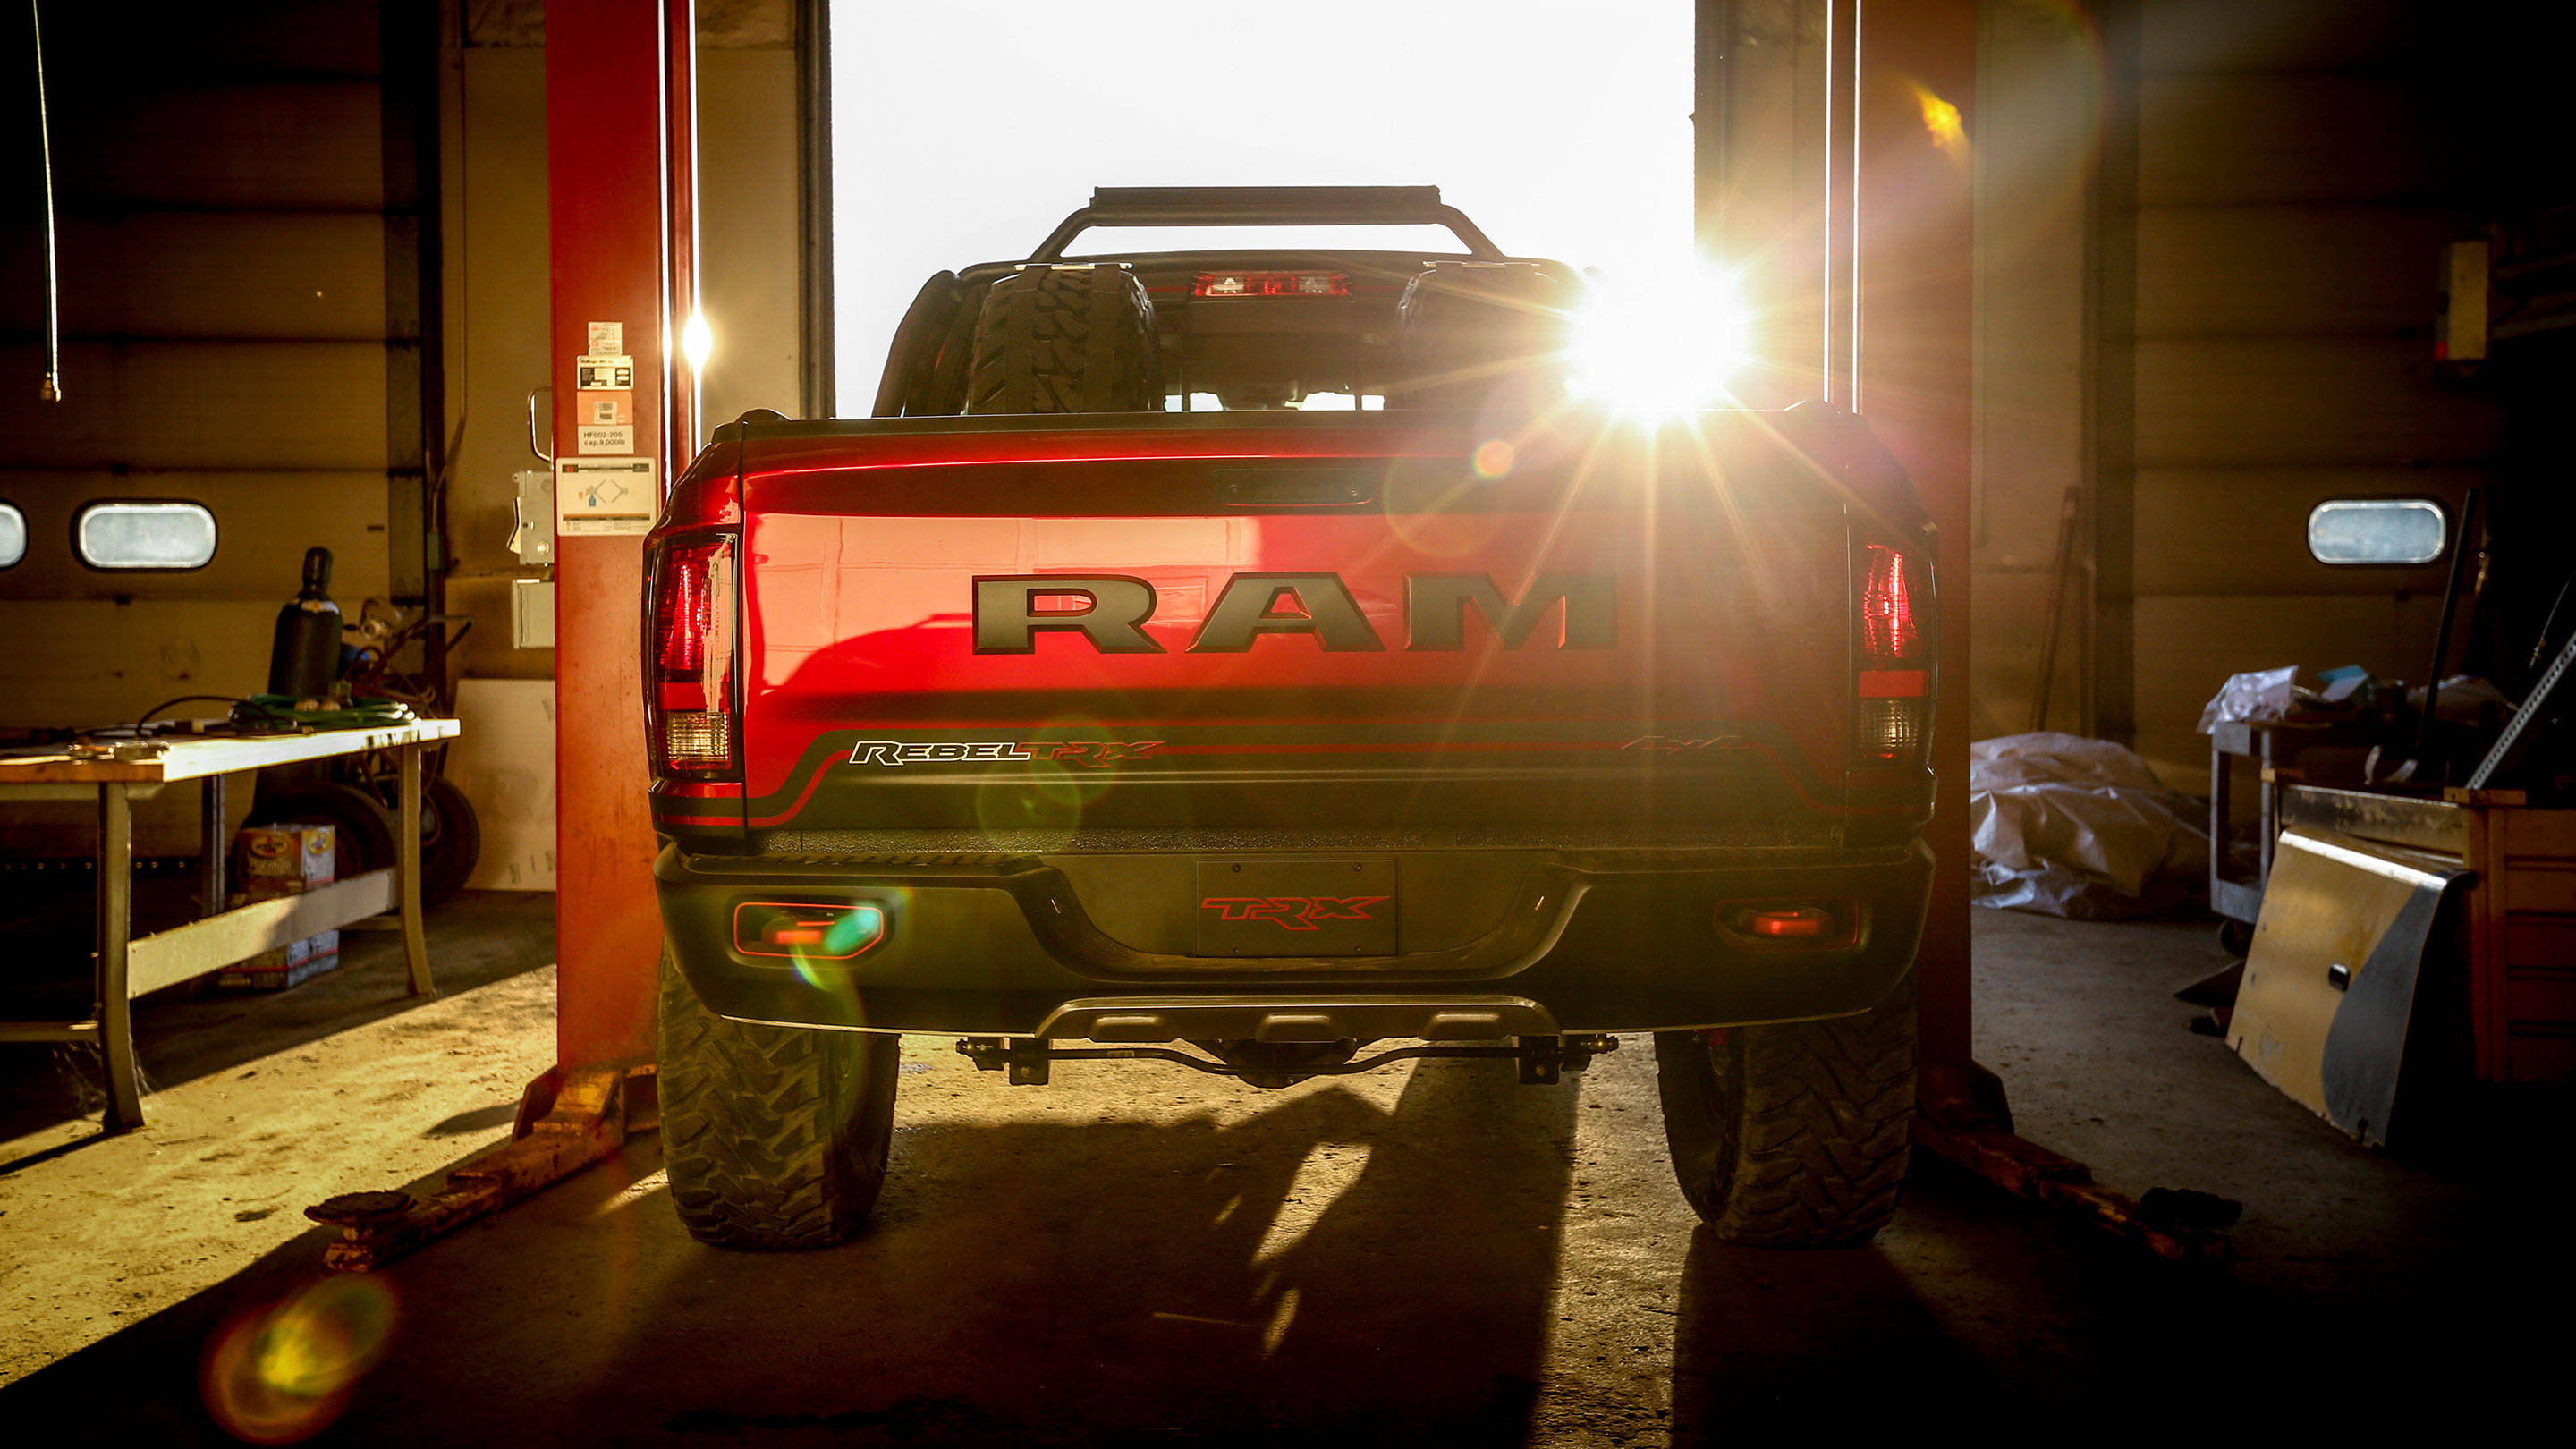 Photo: ramtrucks